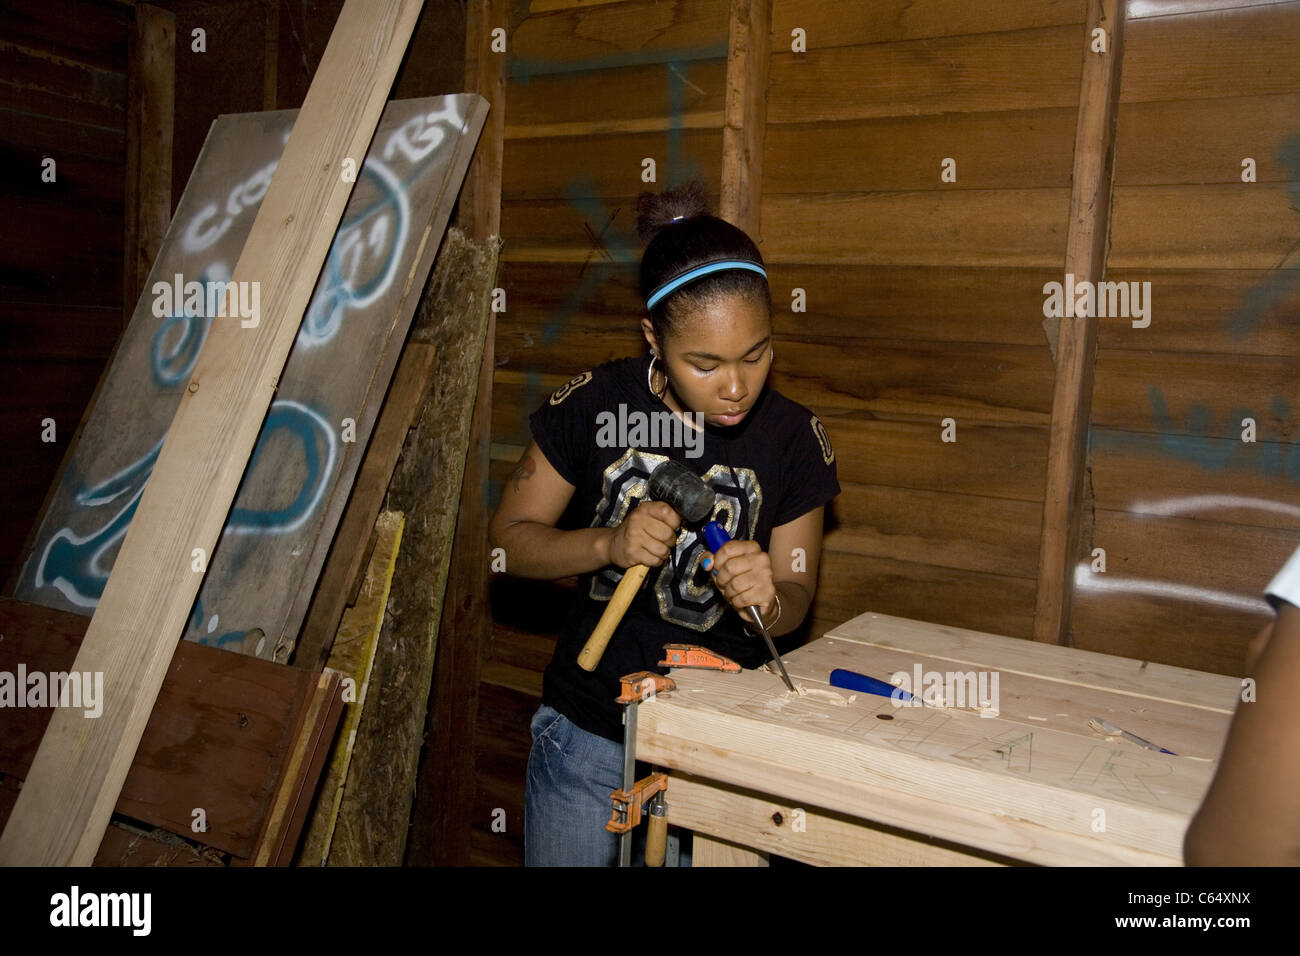 High school teen carves a sign in the Brightening Brightmoor summer project building a park in inner city Detroit - Stock Image